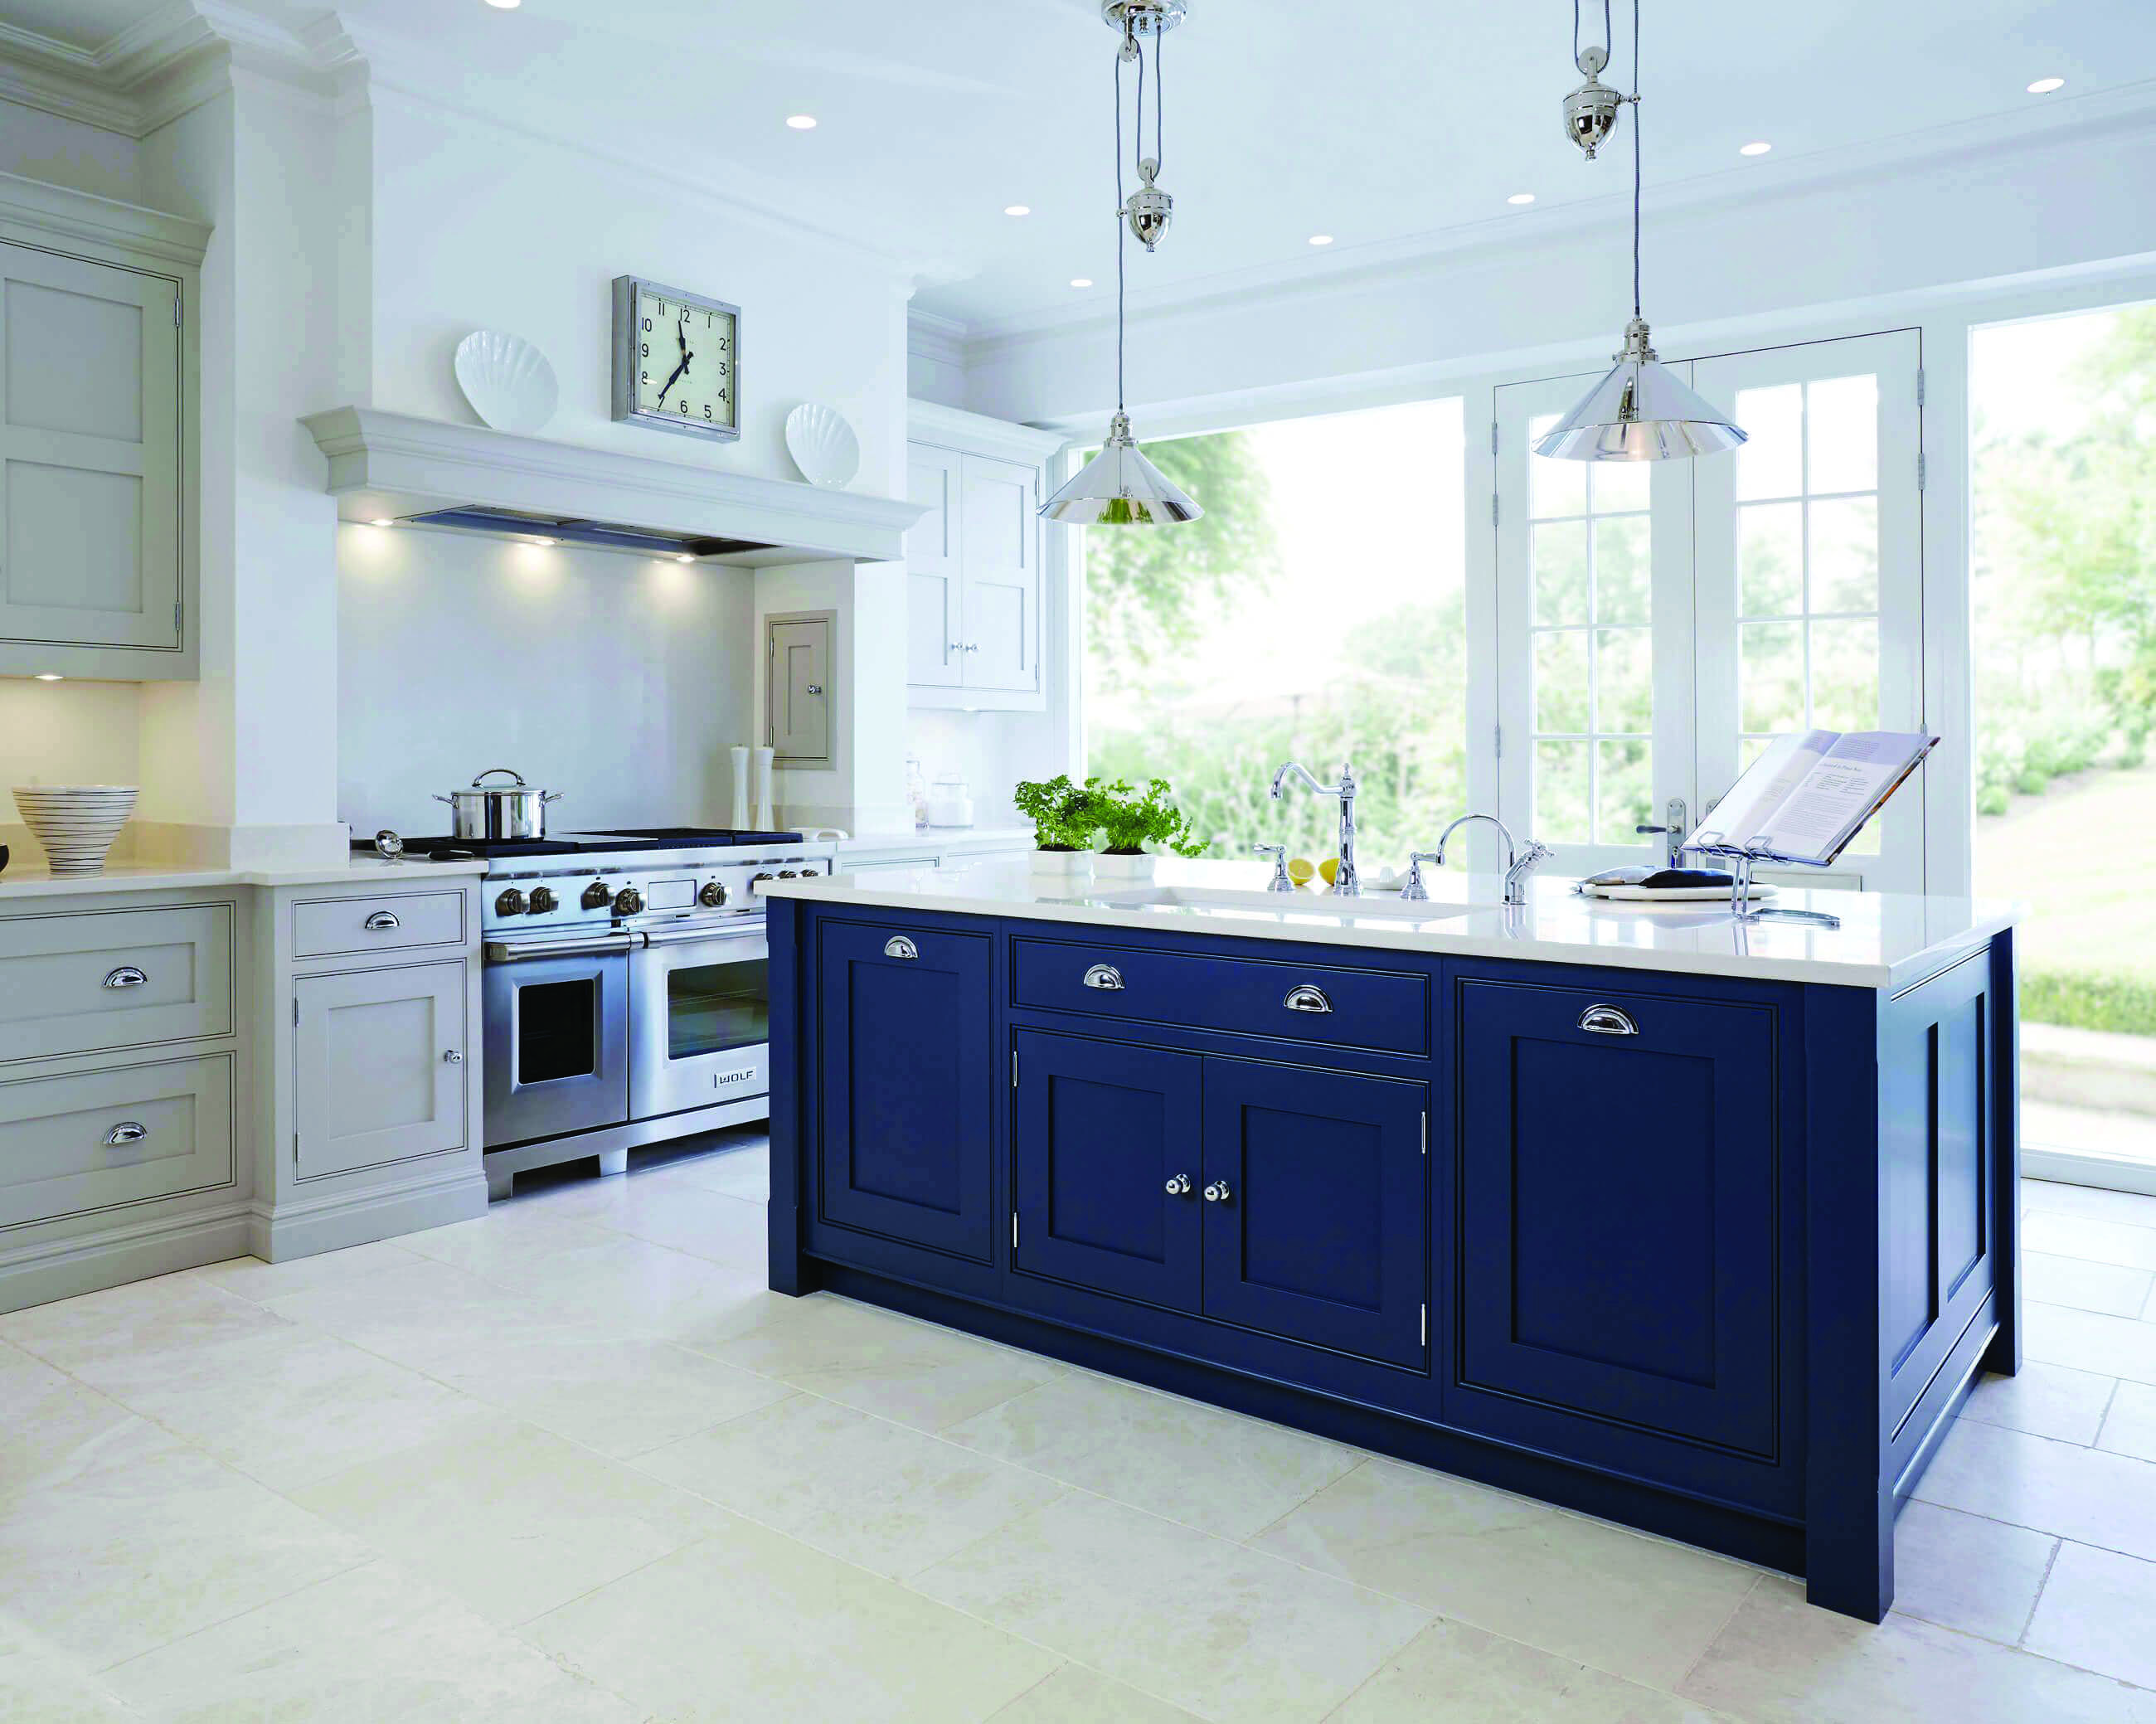 Leading Fad In Kitchen Cabinetry Style Homes Tre Blue Kitchen Cabinets Blue Gray Kitchen Cabinets Dark Blue Kitchen Cabinets